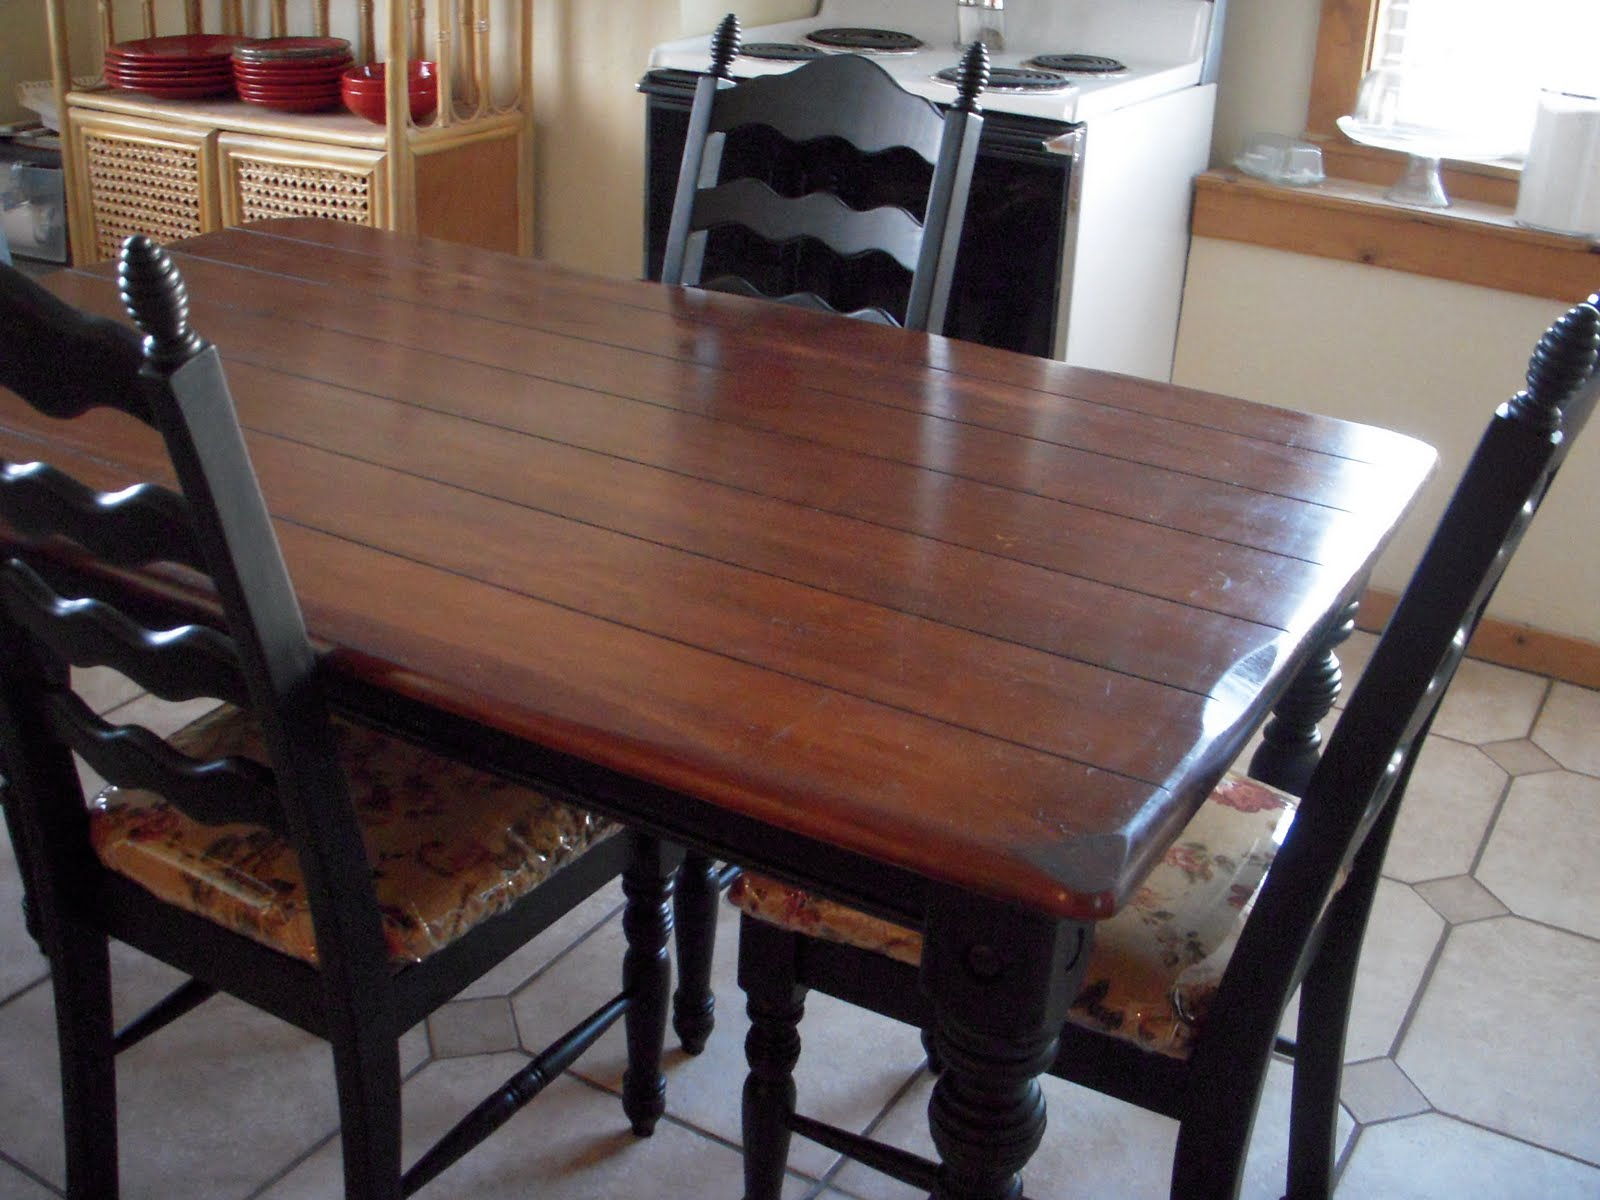 do it yourself divas: DIY: Kitchen Table Makeover